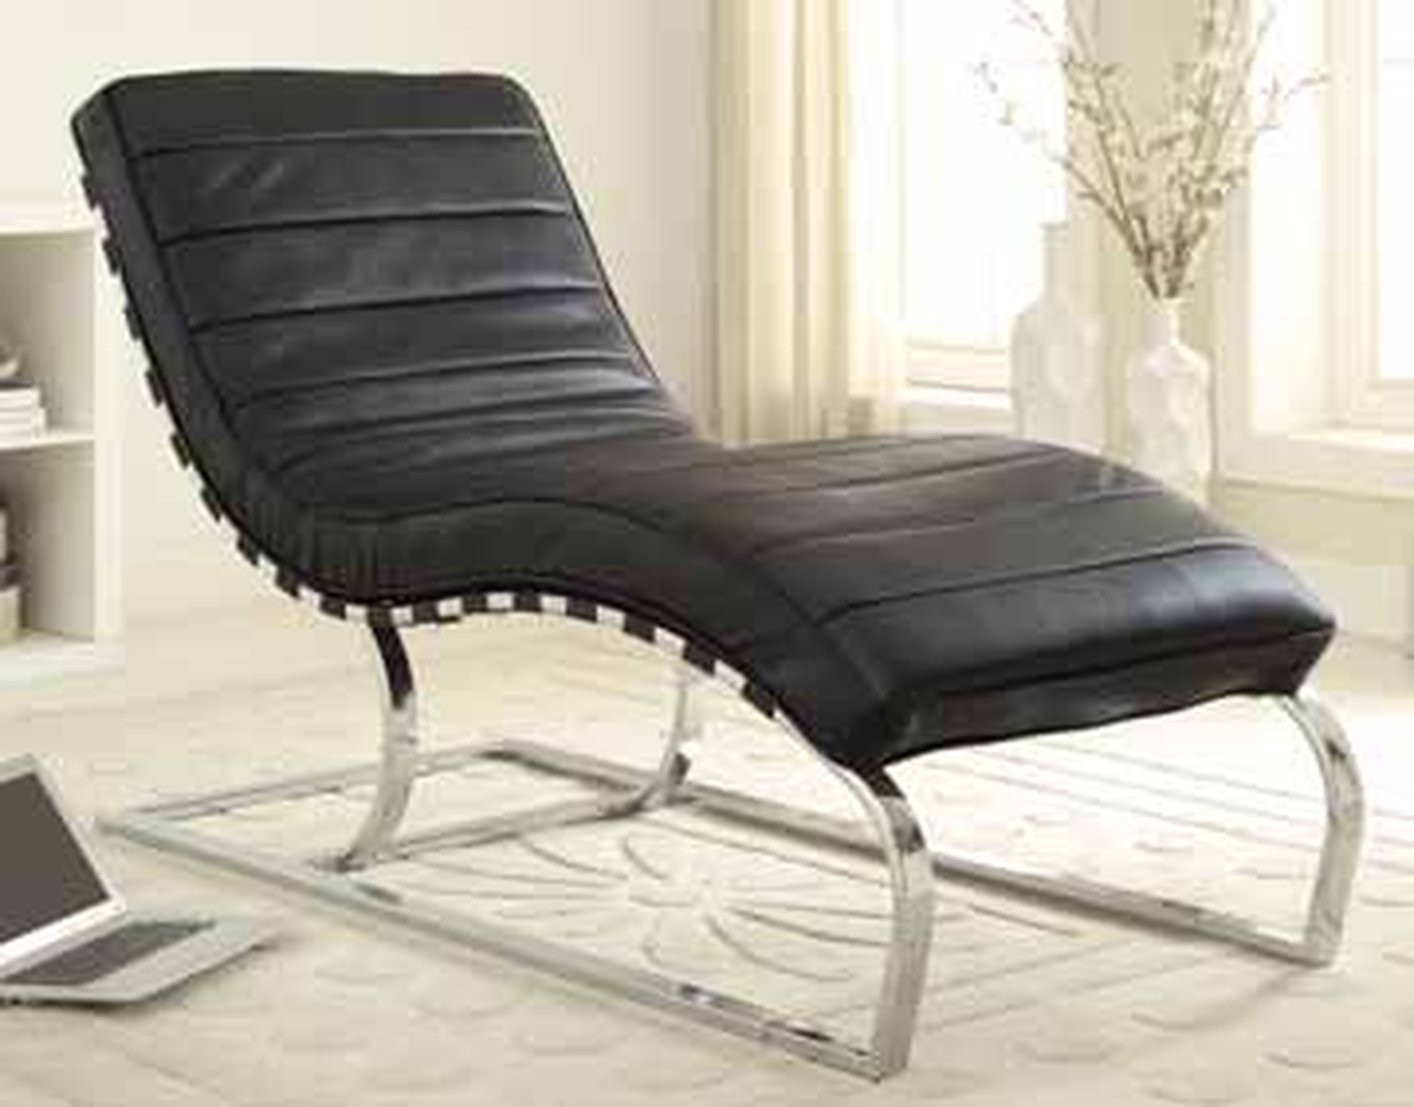 black leather chaise lounge steal a sofa furniture outlet los angeles ca. Black Bedroom Furniture Sets. Home Design Ideas